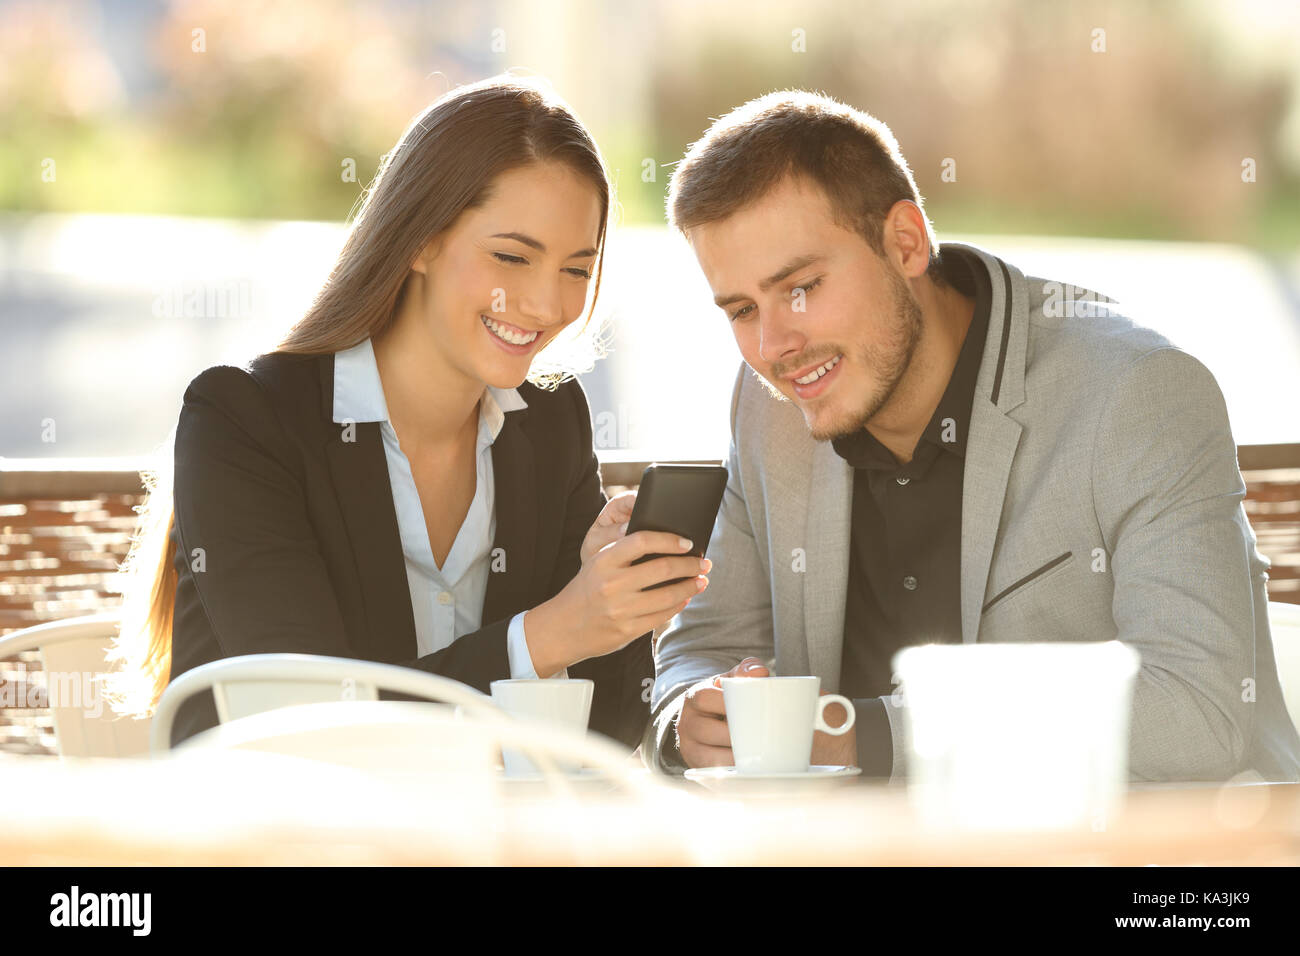 Two happy executives using a smart phone sitting in a restaurant terrace with a warm light in the background - Stock Image